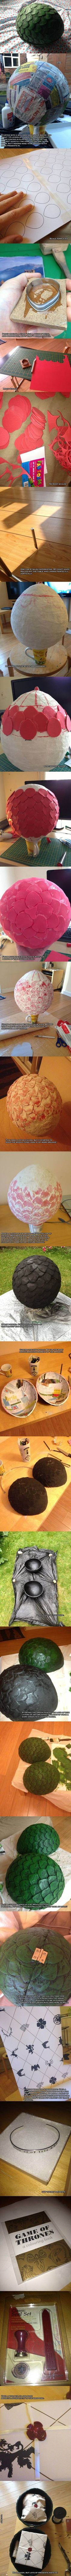 How to make your own Game of Thrones dragon eggs